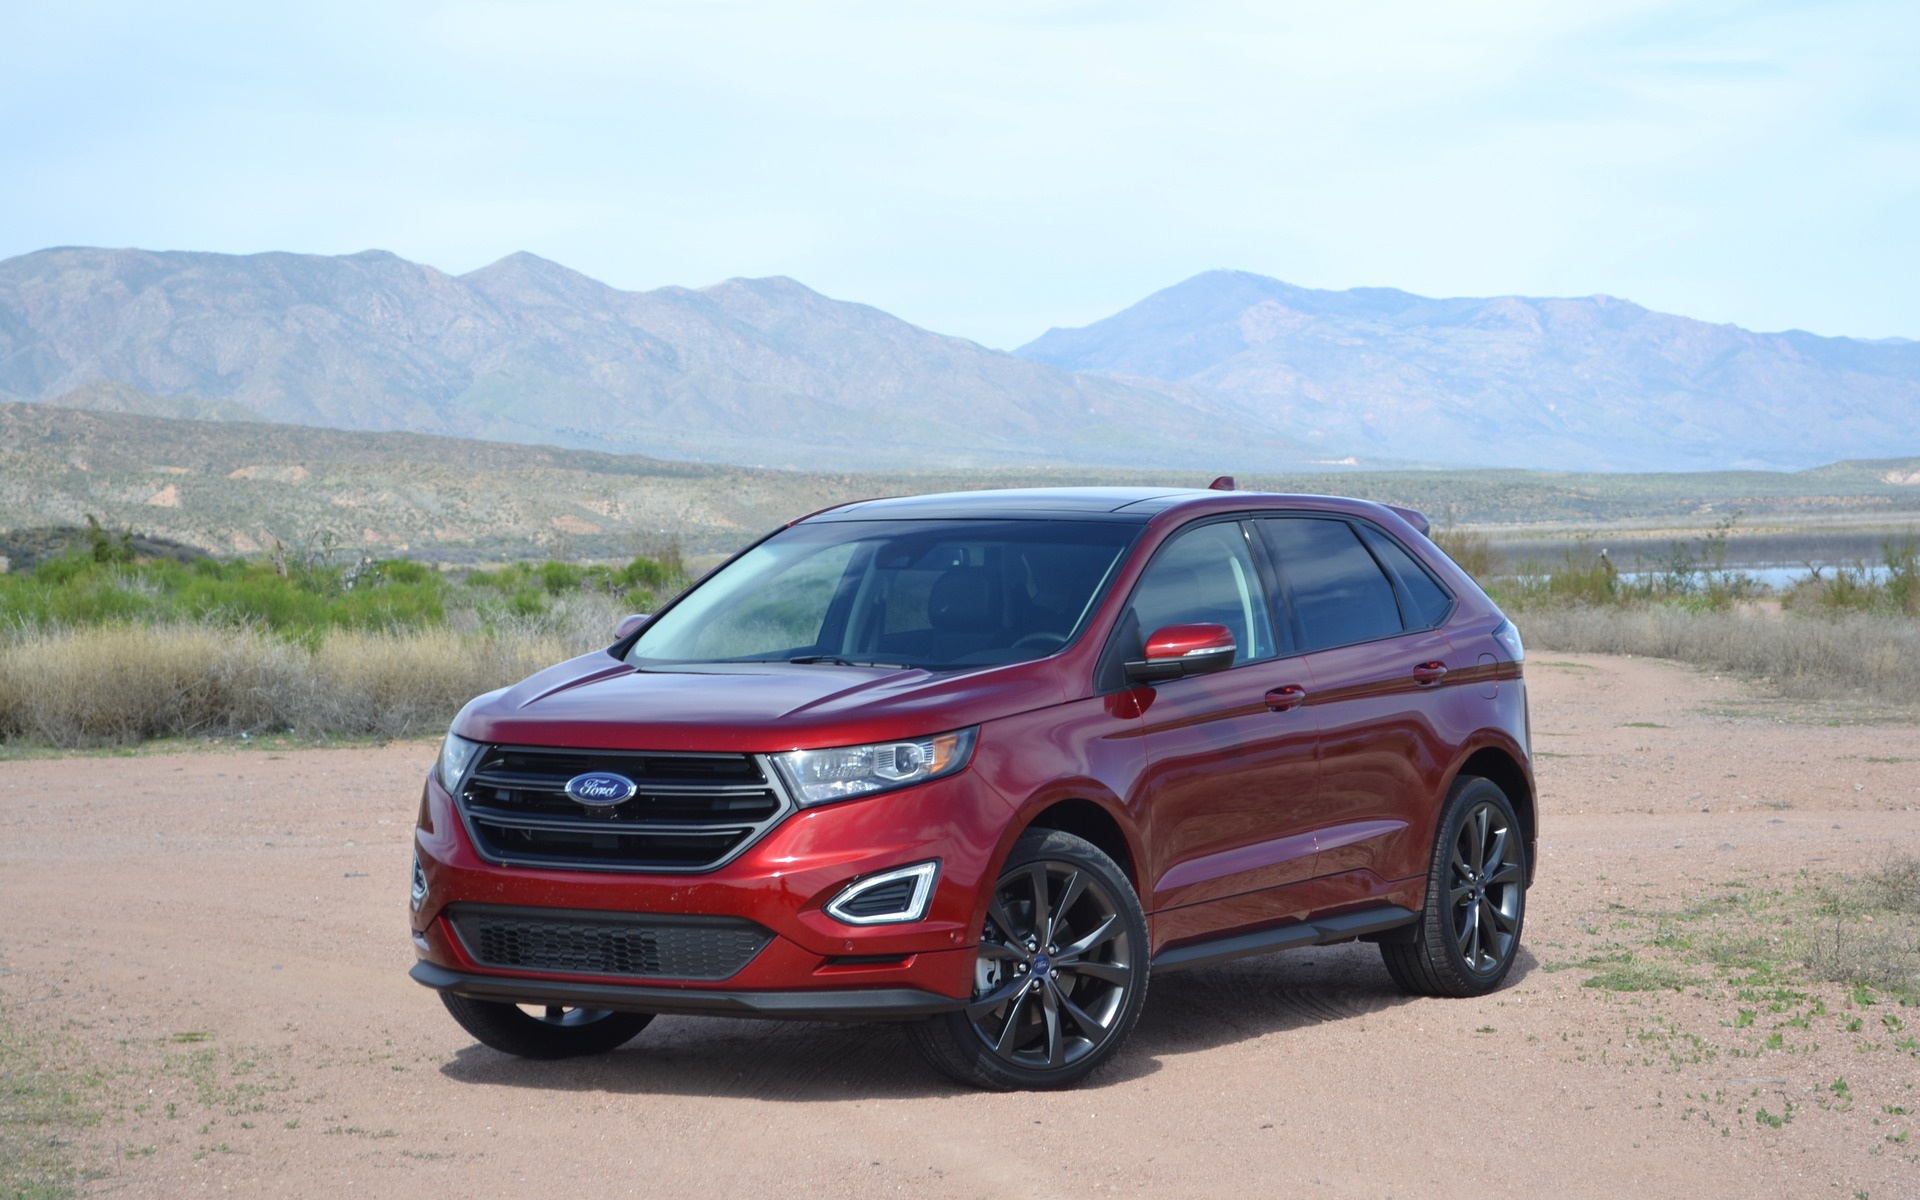 Ford Edge News Reviews Picture Galleries And Videos The Car Guide